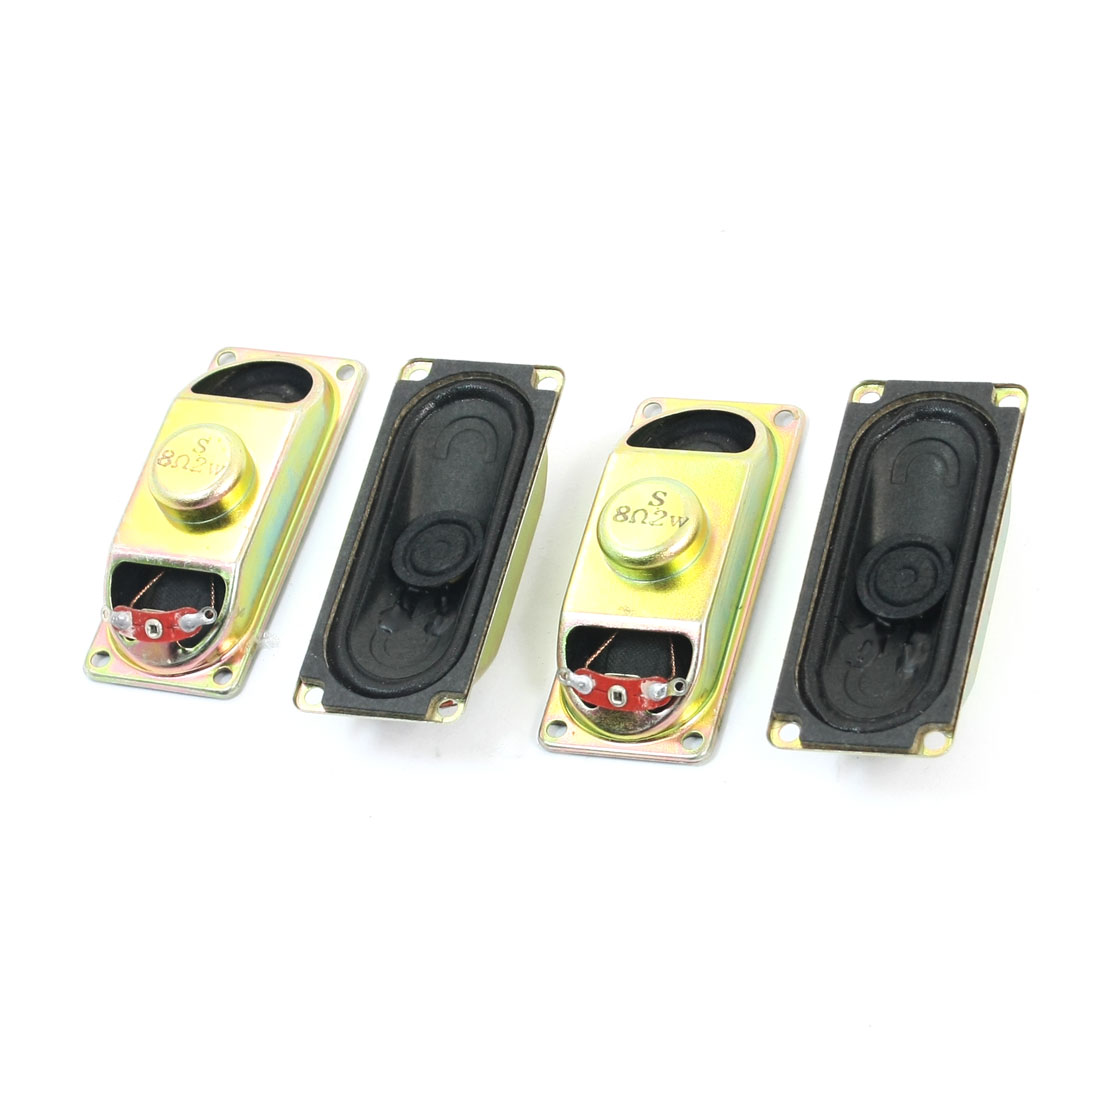 4 Pcs 70mm x 30mm Rectangle Metal Housing Magnetic Type Audio Speaker Amplifier Trumpet Loudspeaker 2W 8 Ohm for LCD TV Player